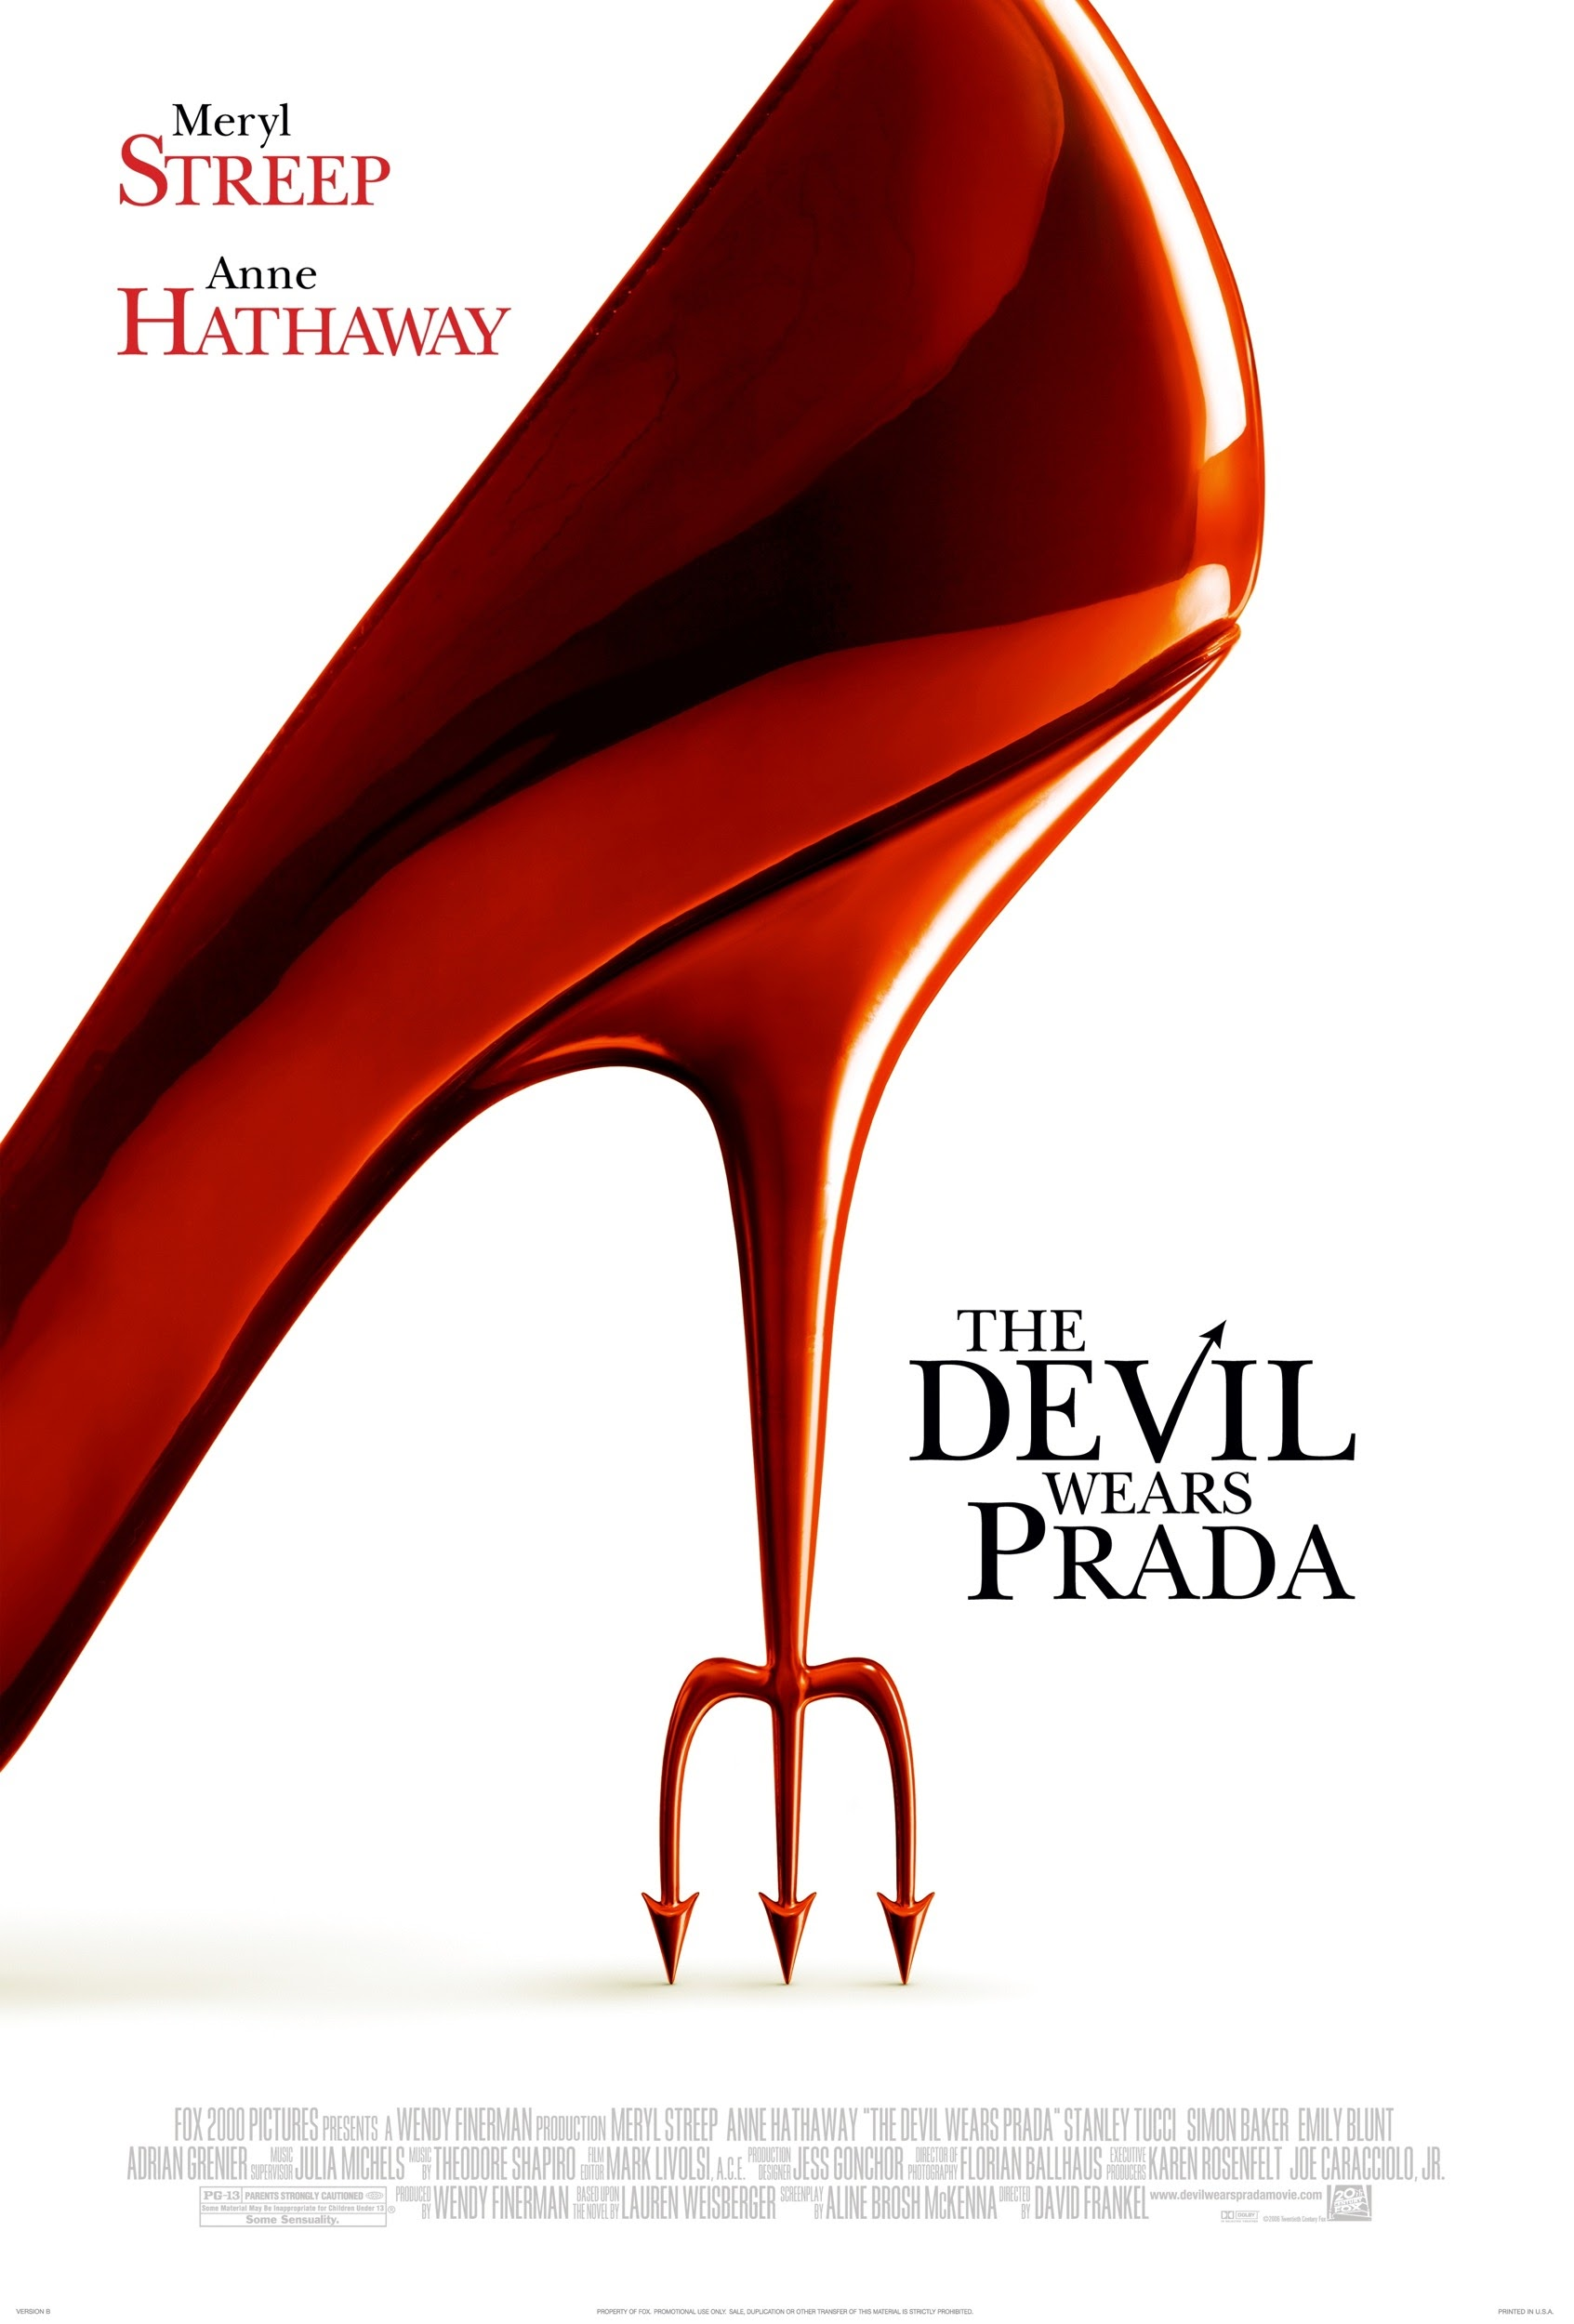 The Devil Wears Prada 2006 English (Eng Subs) x264 BrRip 480p [329MB] | 720p [700MB] mkv